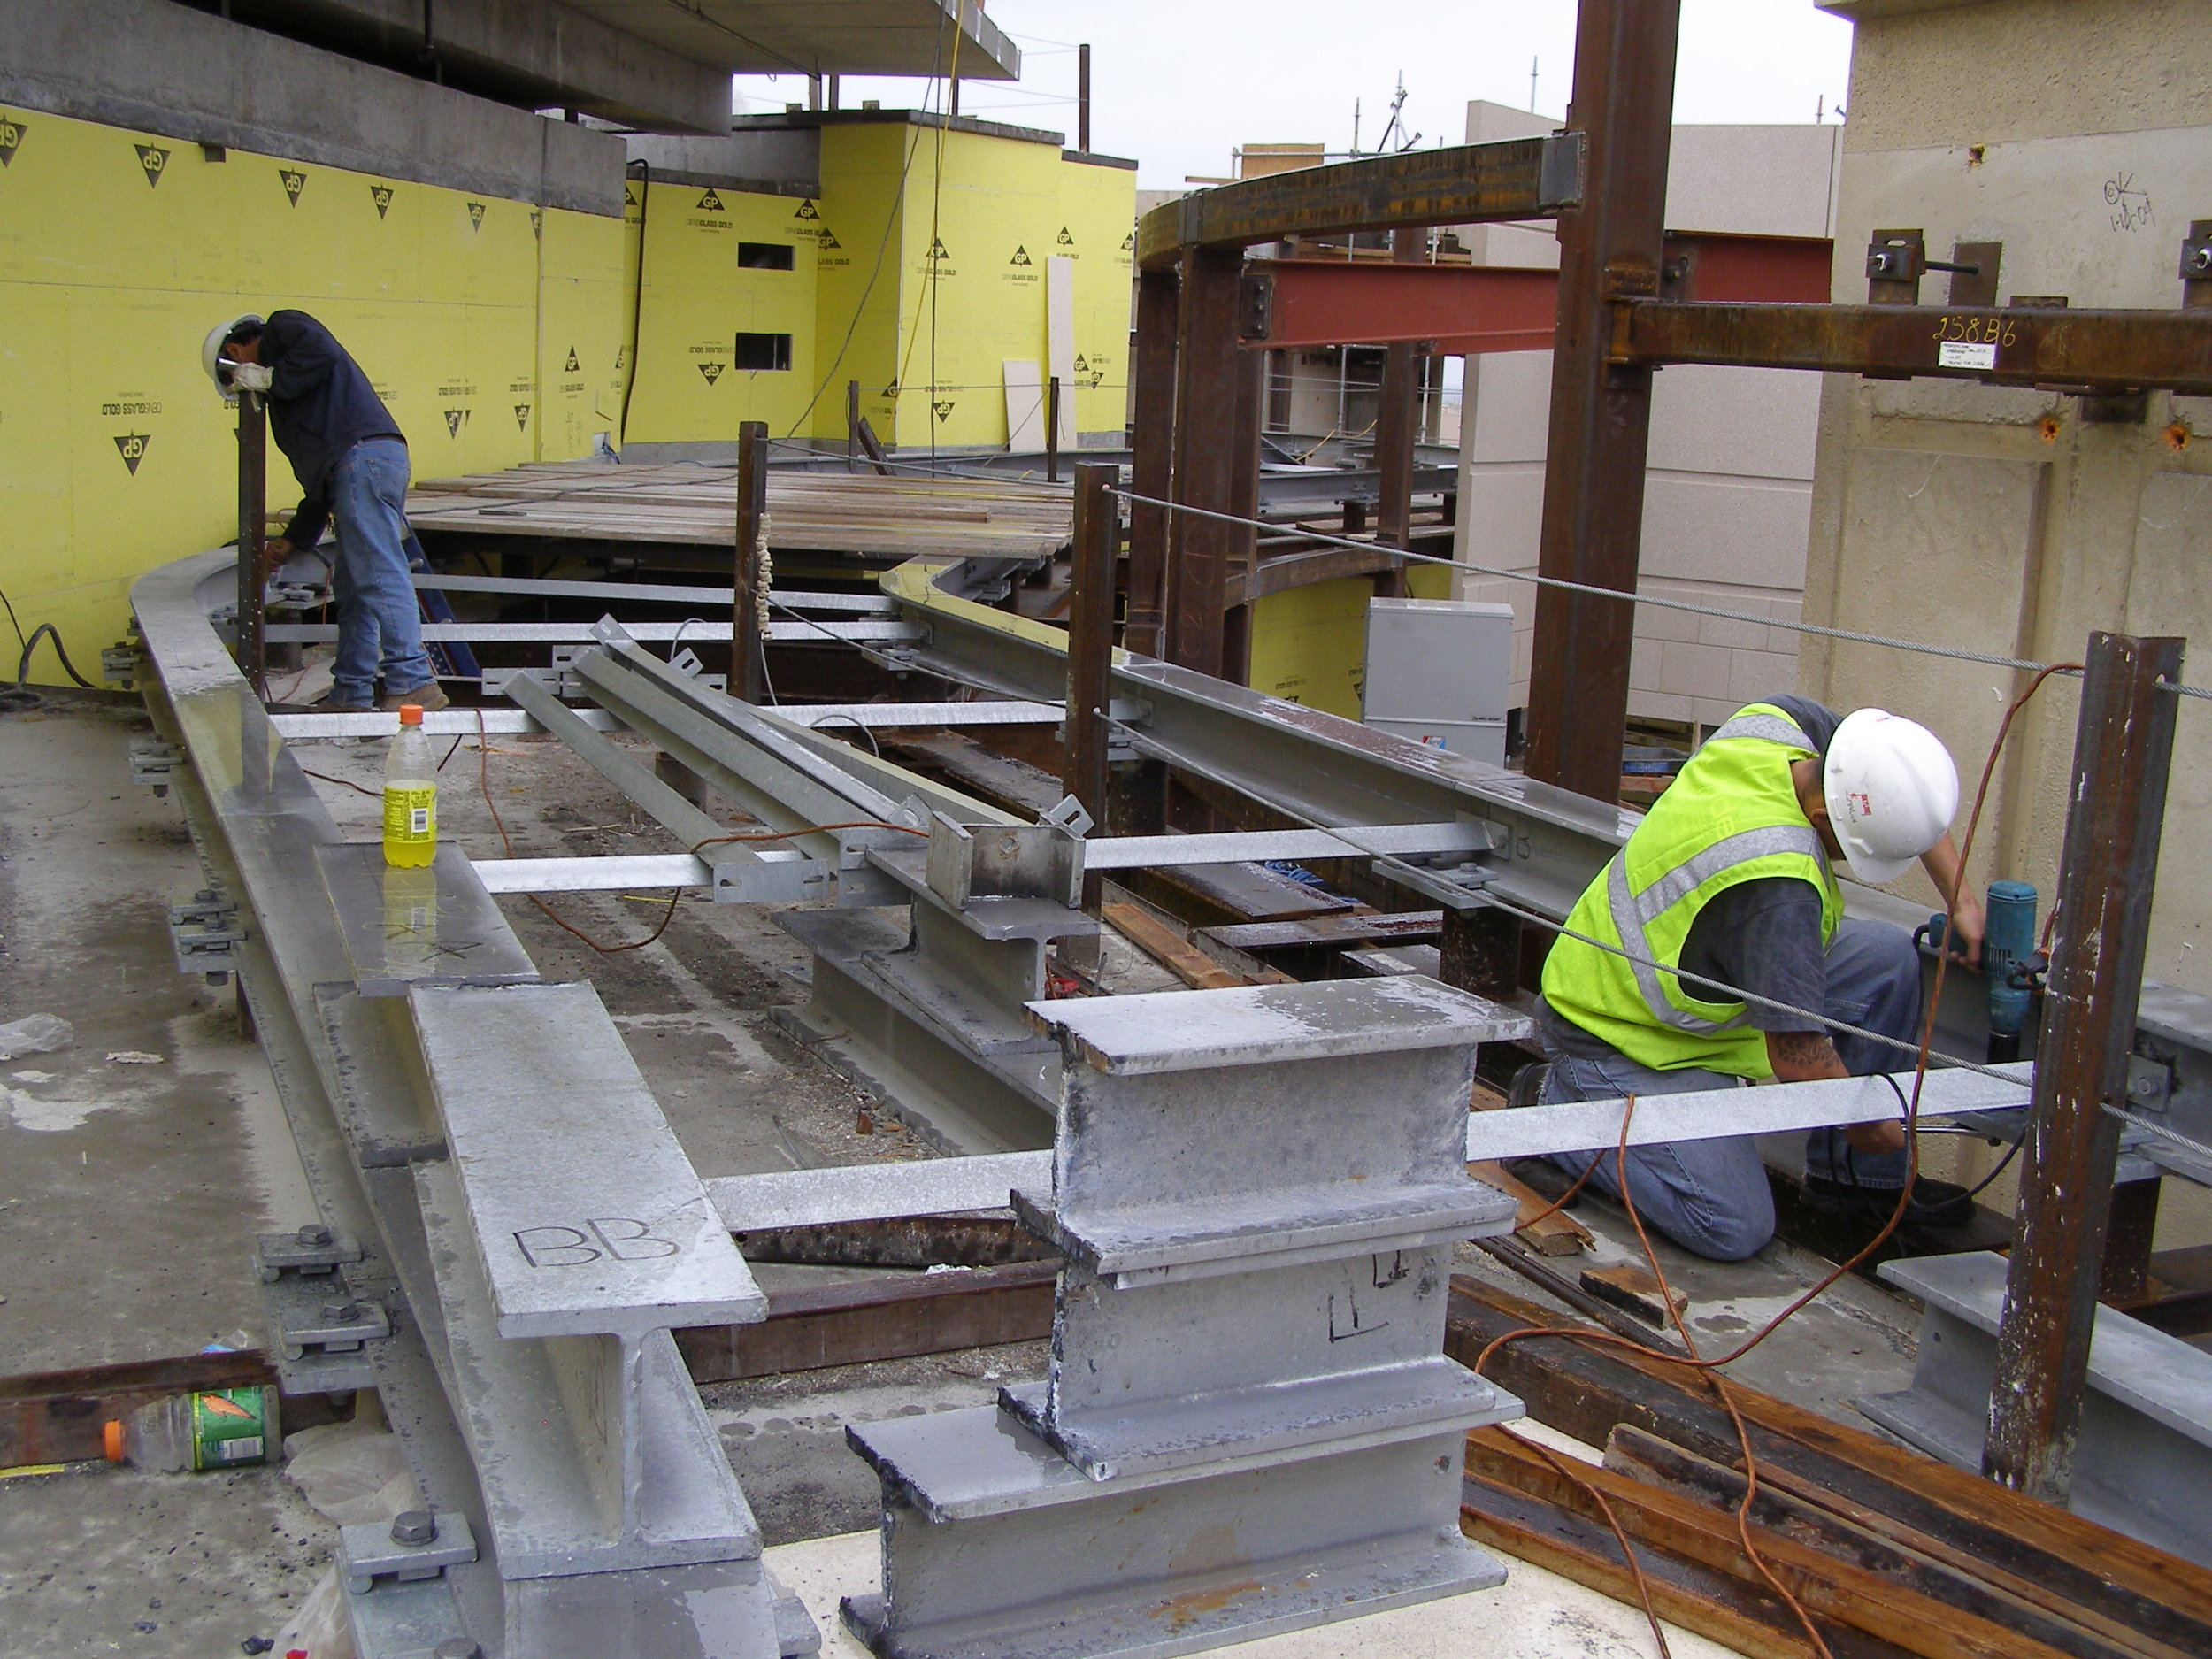 Step 2.  As the BMU was being shipped, the track support pedestals and track was installed by Sky Rider's Crew.